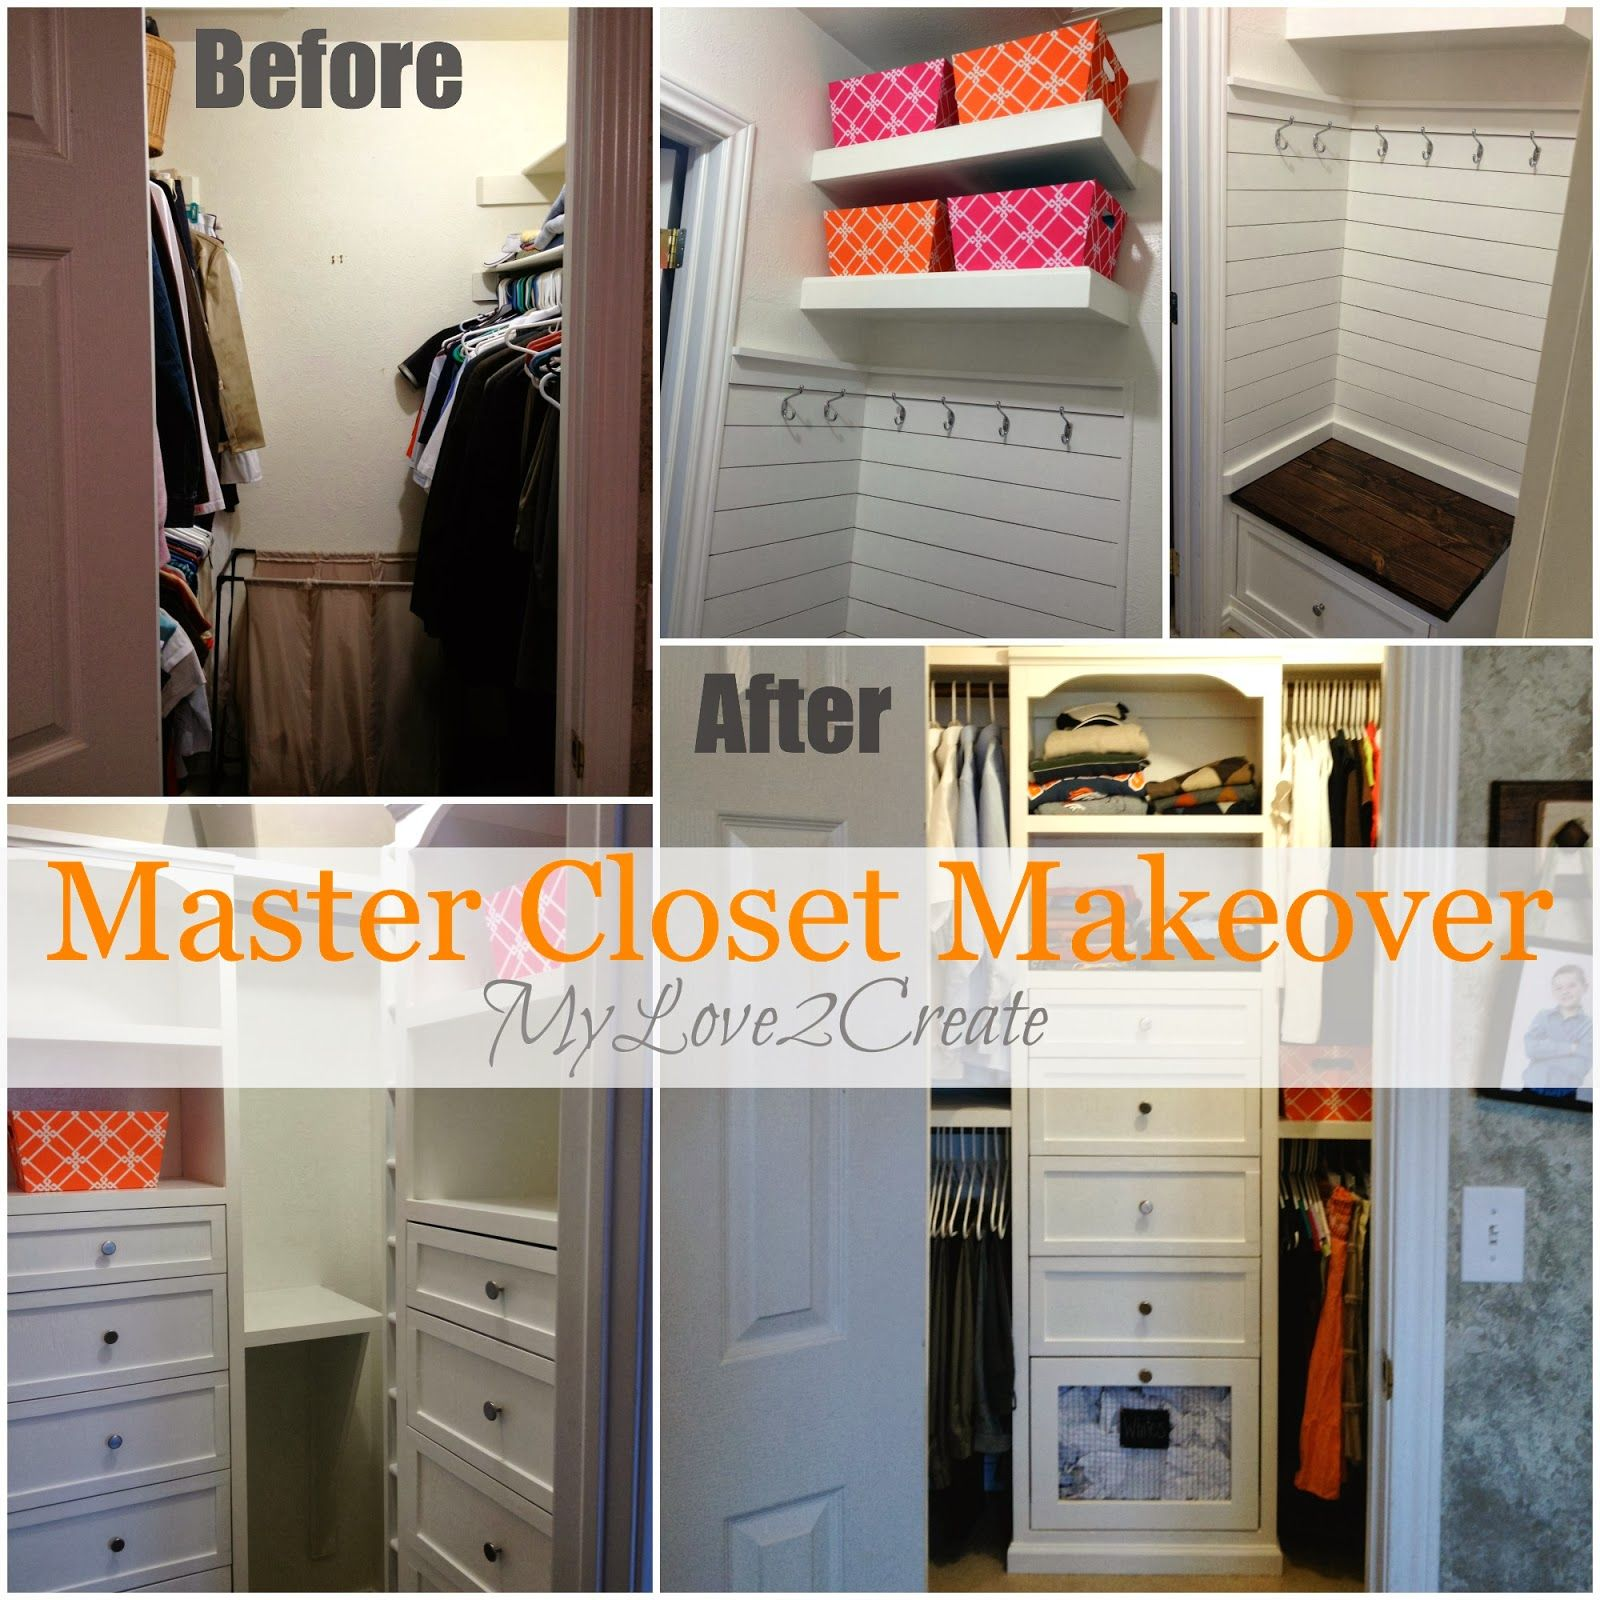 Custom Closet Systems Neatly Organize Your Clothes And Make The Most Of Your Available Space But Depending On The Size Of Your C Master Closet Master Bedroom Closet Closet Bedroom